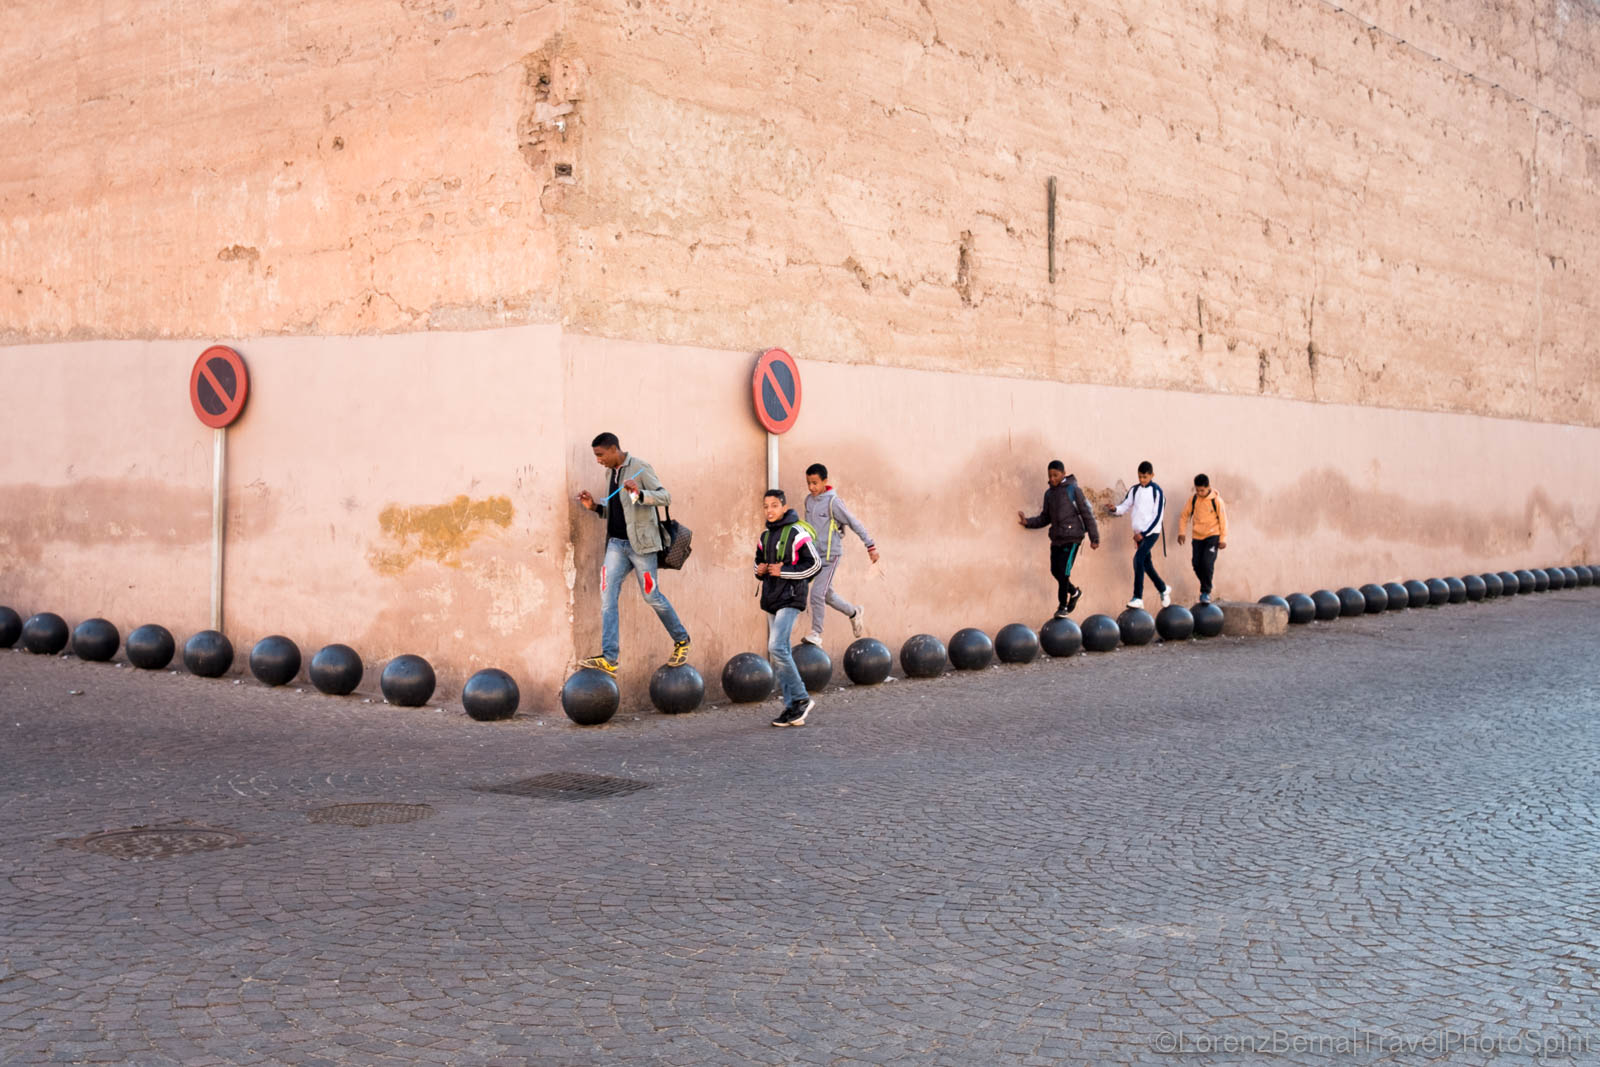 Group of boys walking over street bollards alongside a city rampart in Marrakech